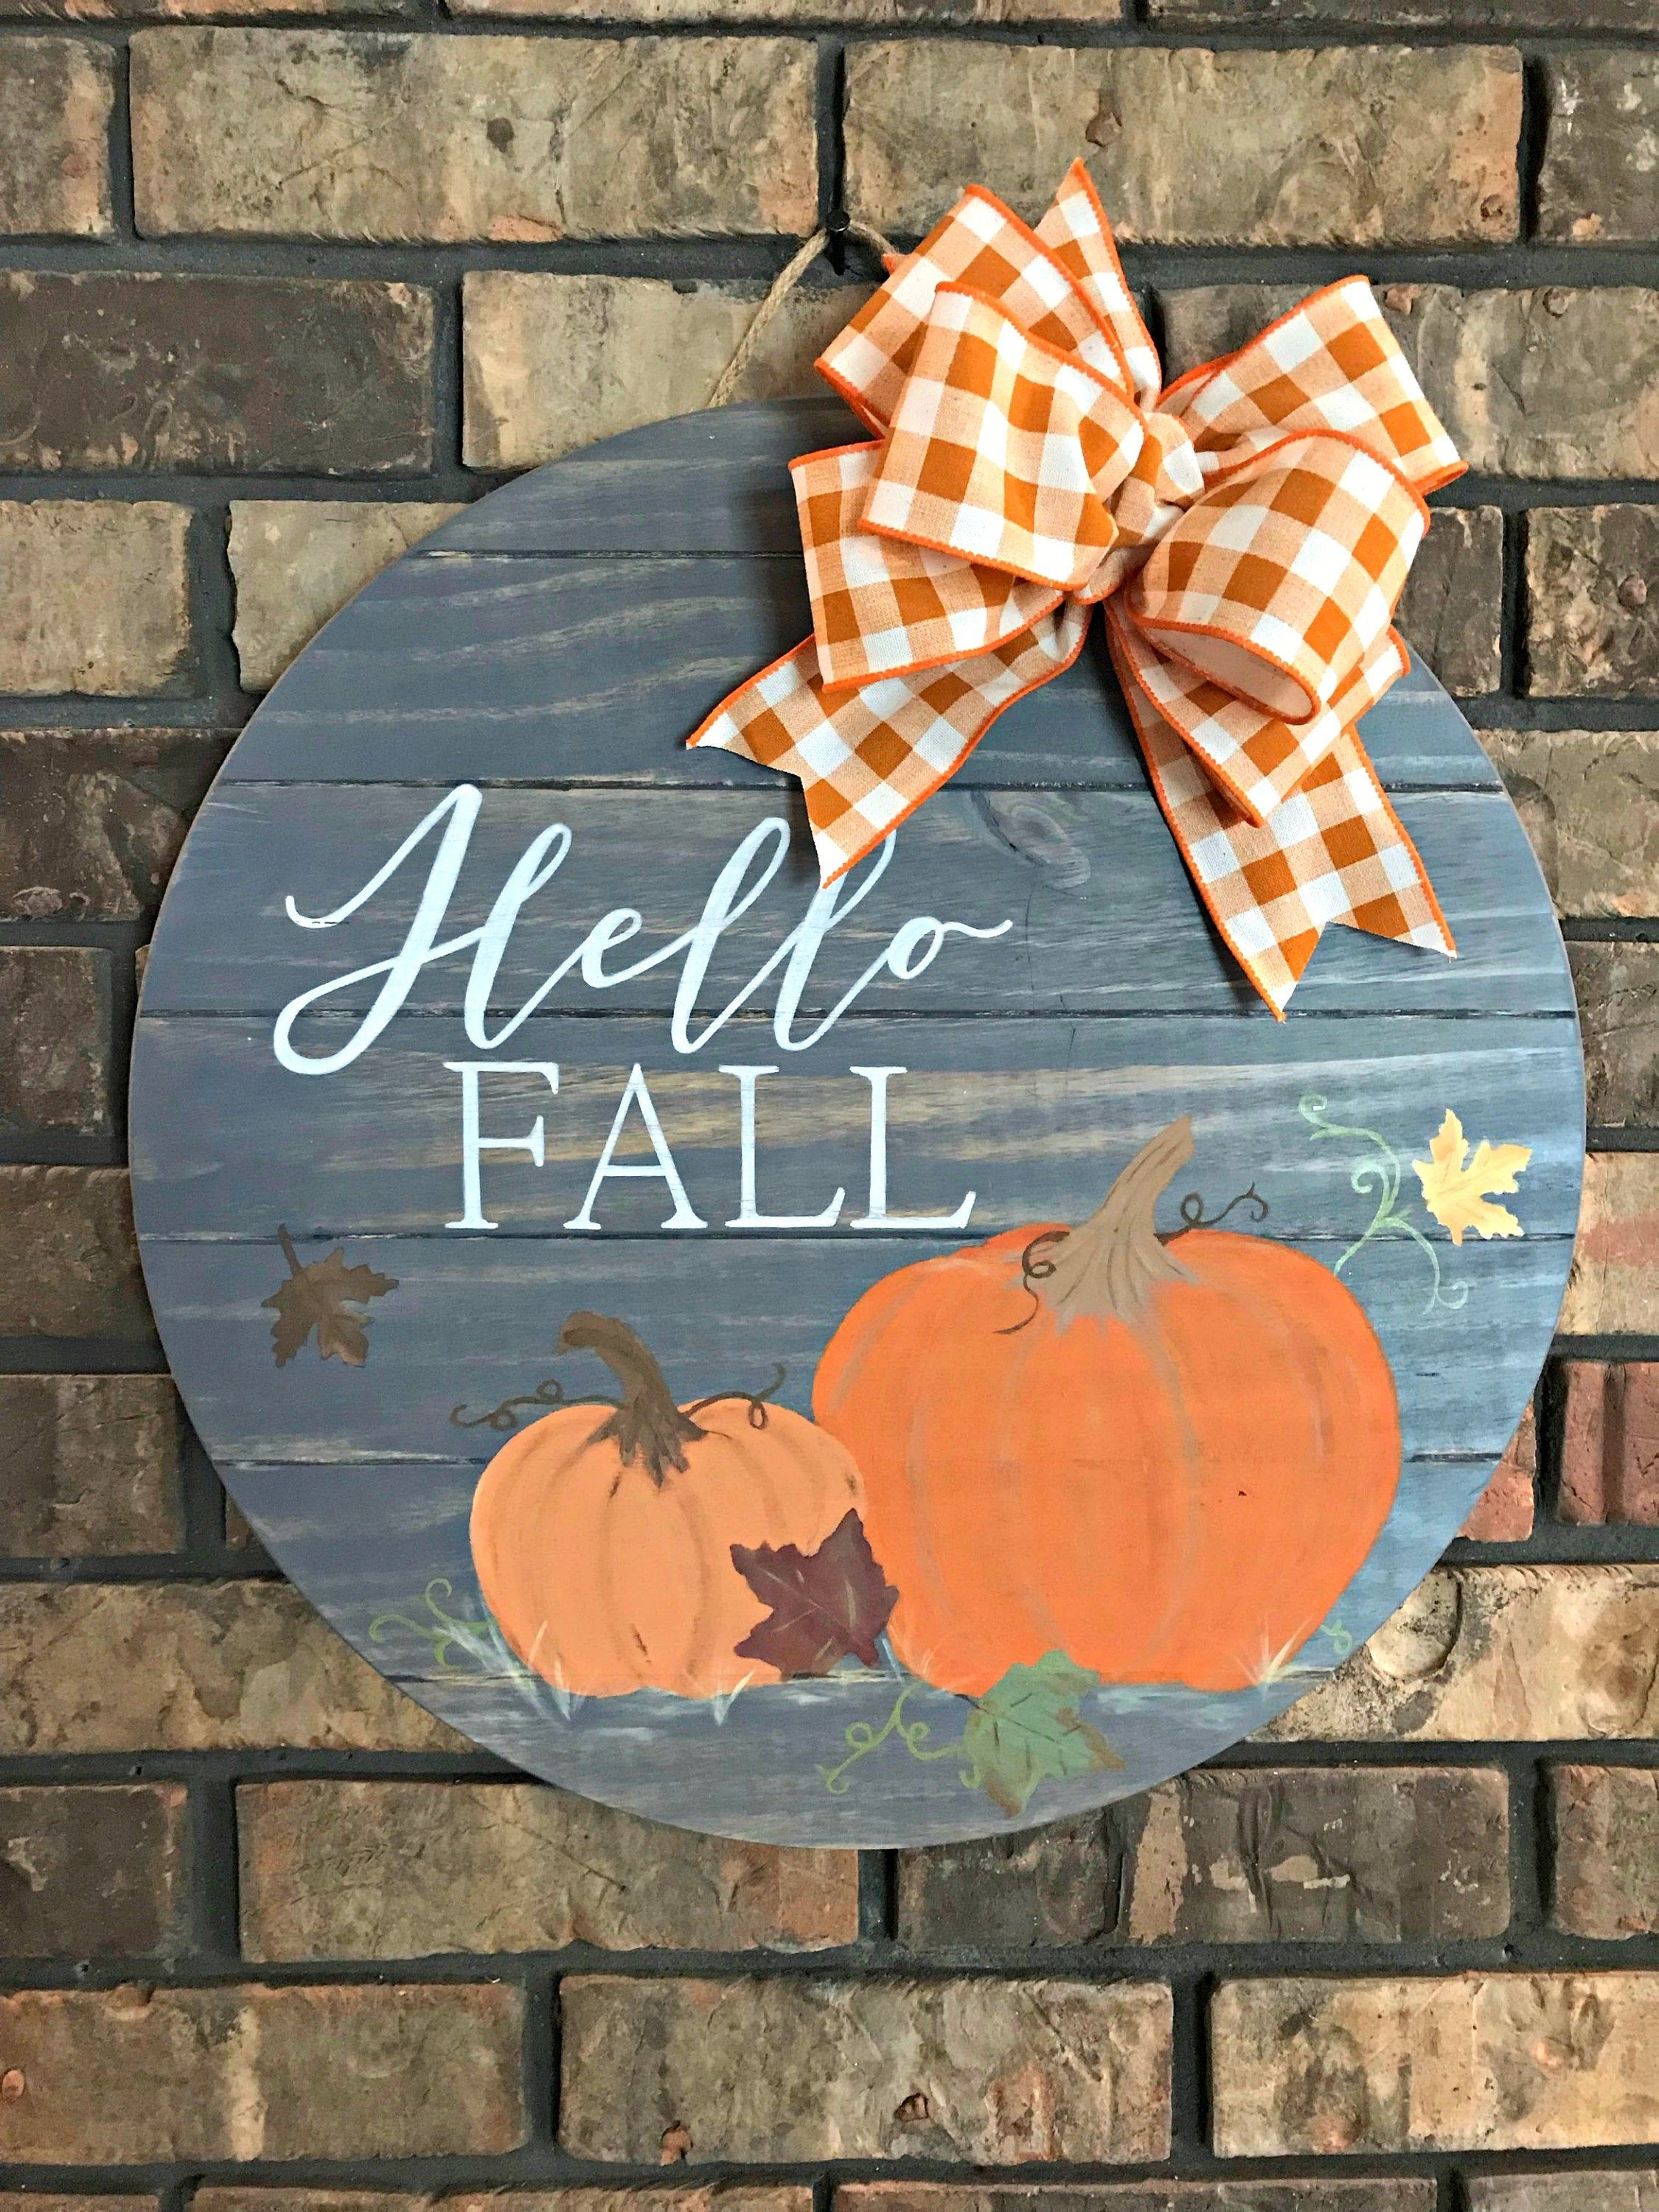 Hello Fall Wooden Door Hanger With Pumpkins Hand Painted Round Sign Fall Sign Autumn Porch Decor Hostess Gift Classroom Decoration Fall Wooden Door Hangers Fall Decorations Porch Wooden Door Hangers